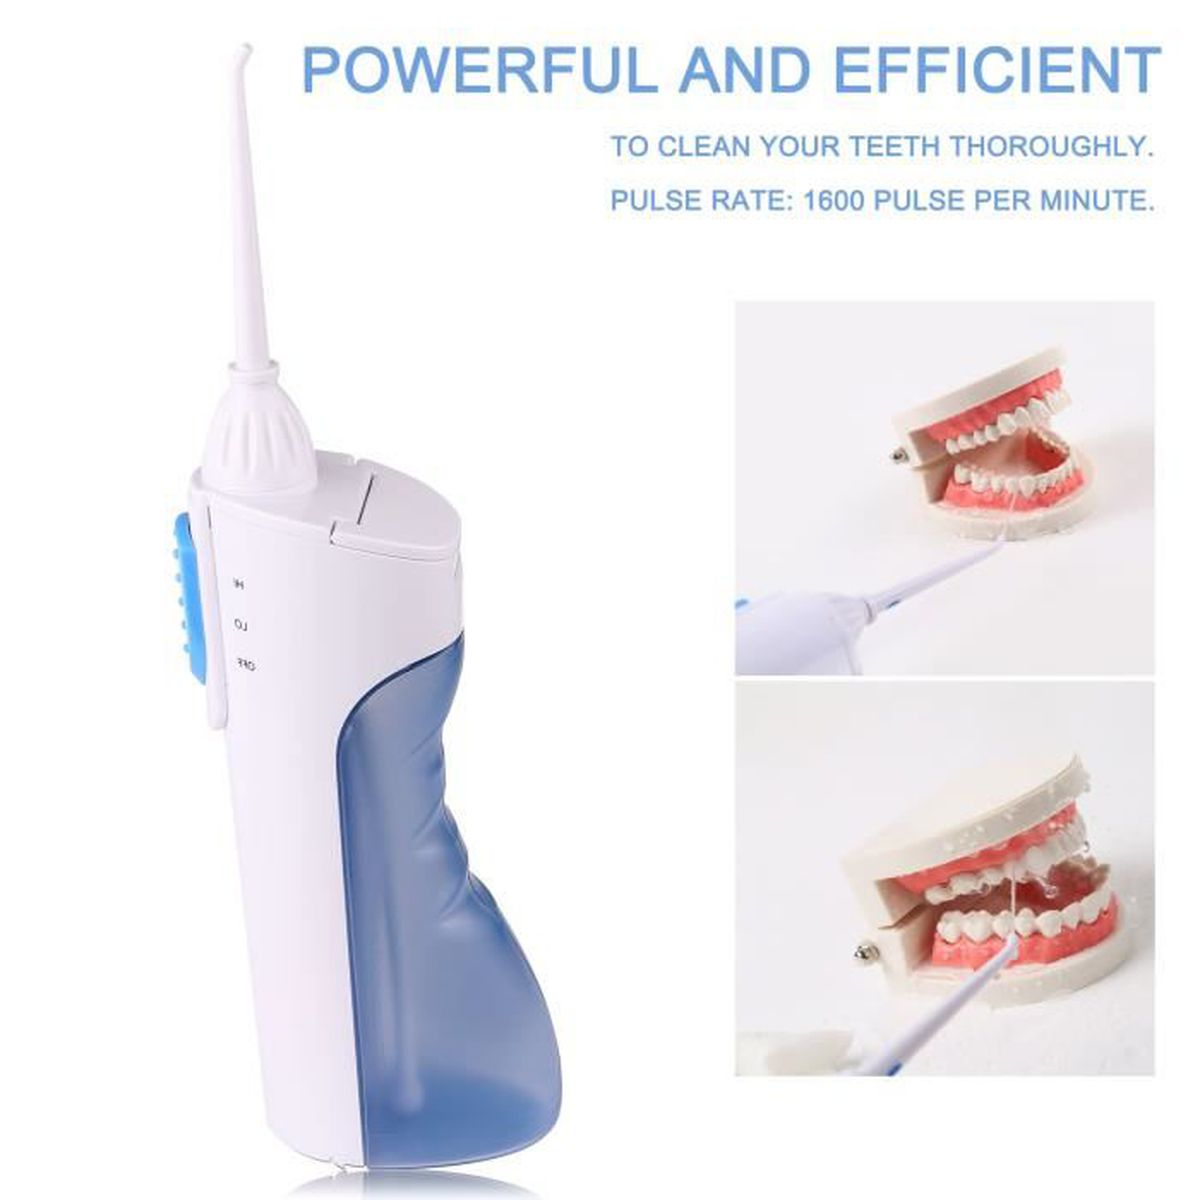 portable ultrasons jet dentaire sans fil machine voyage oral irrigator teethwash pour laver les. Black Bedroom Furniture Sets. Home Design Ideas